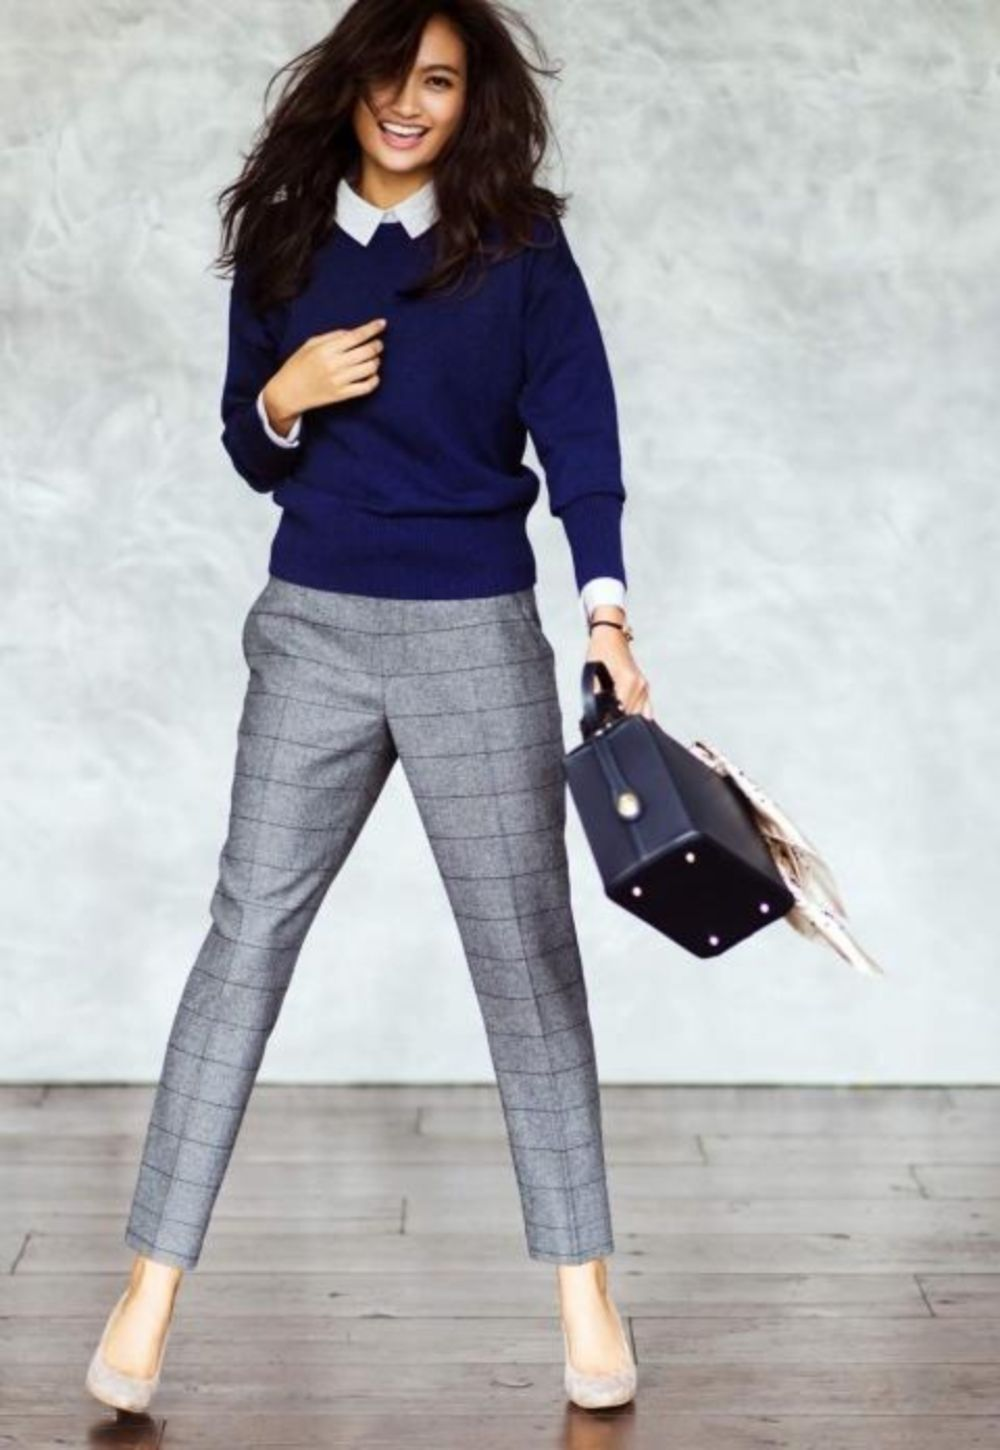 fashionable work outfits for women work outfits nice and